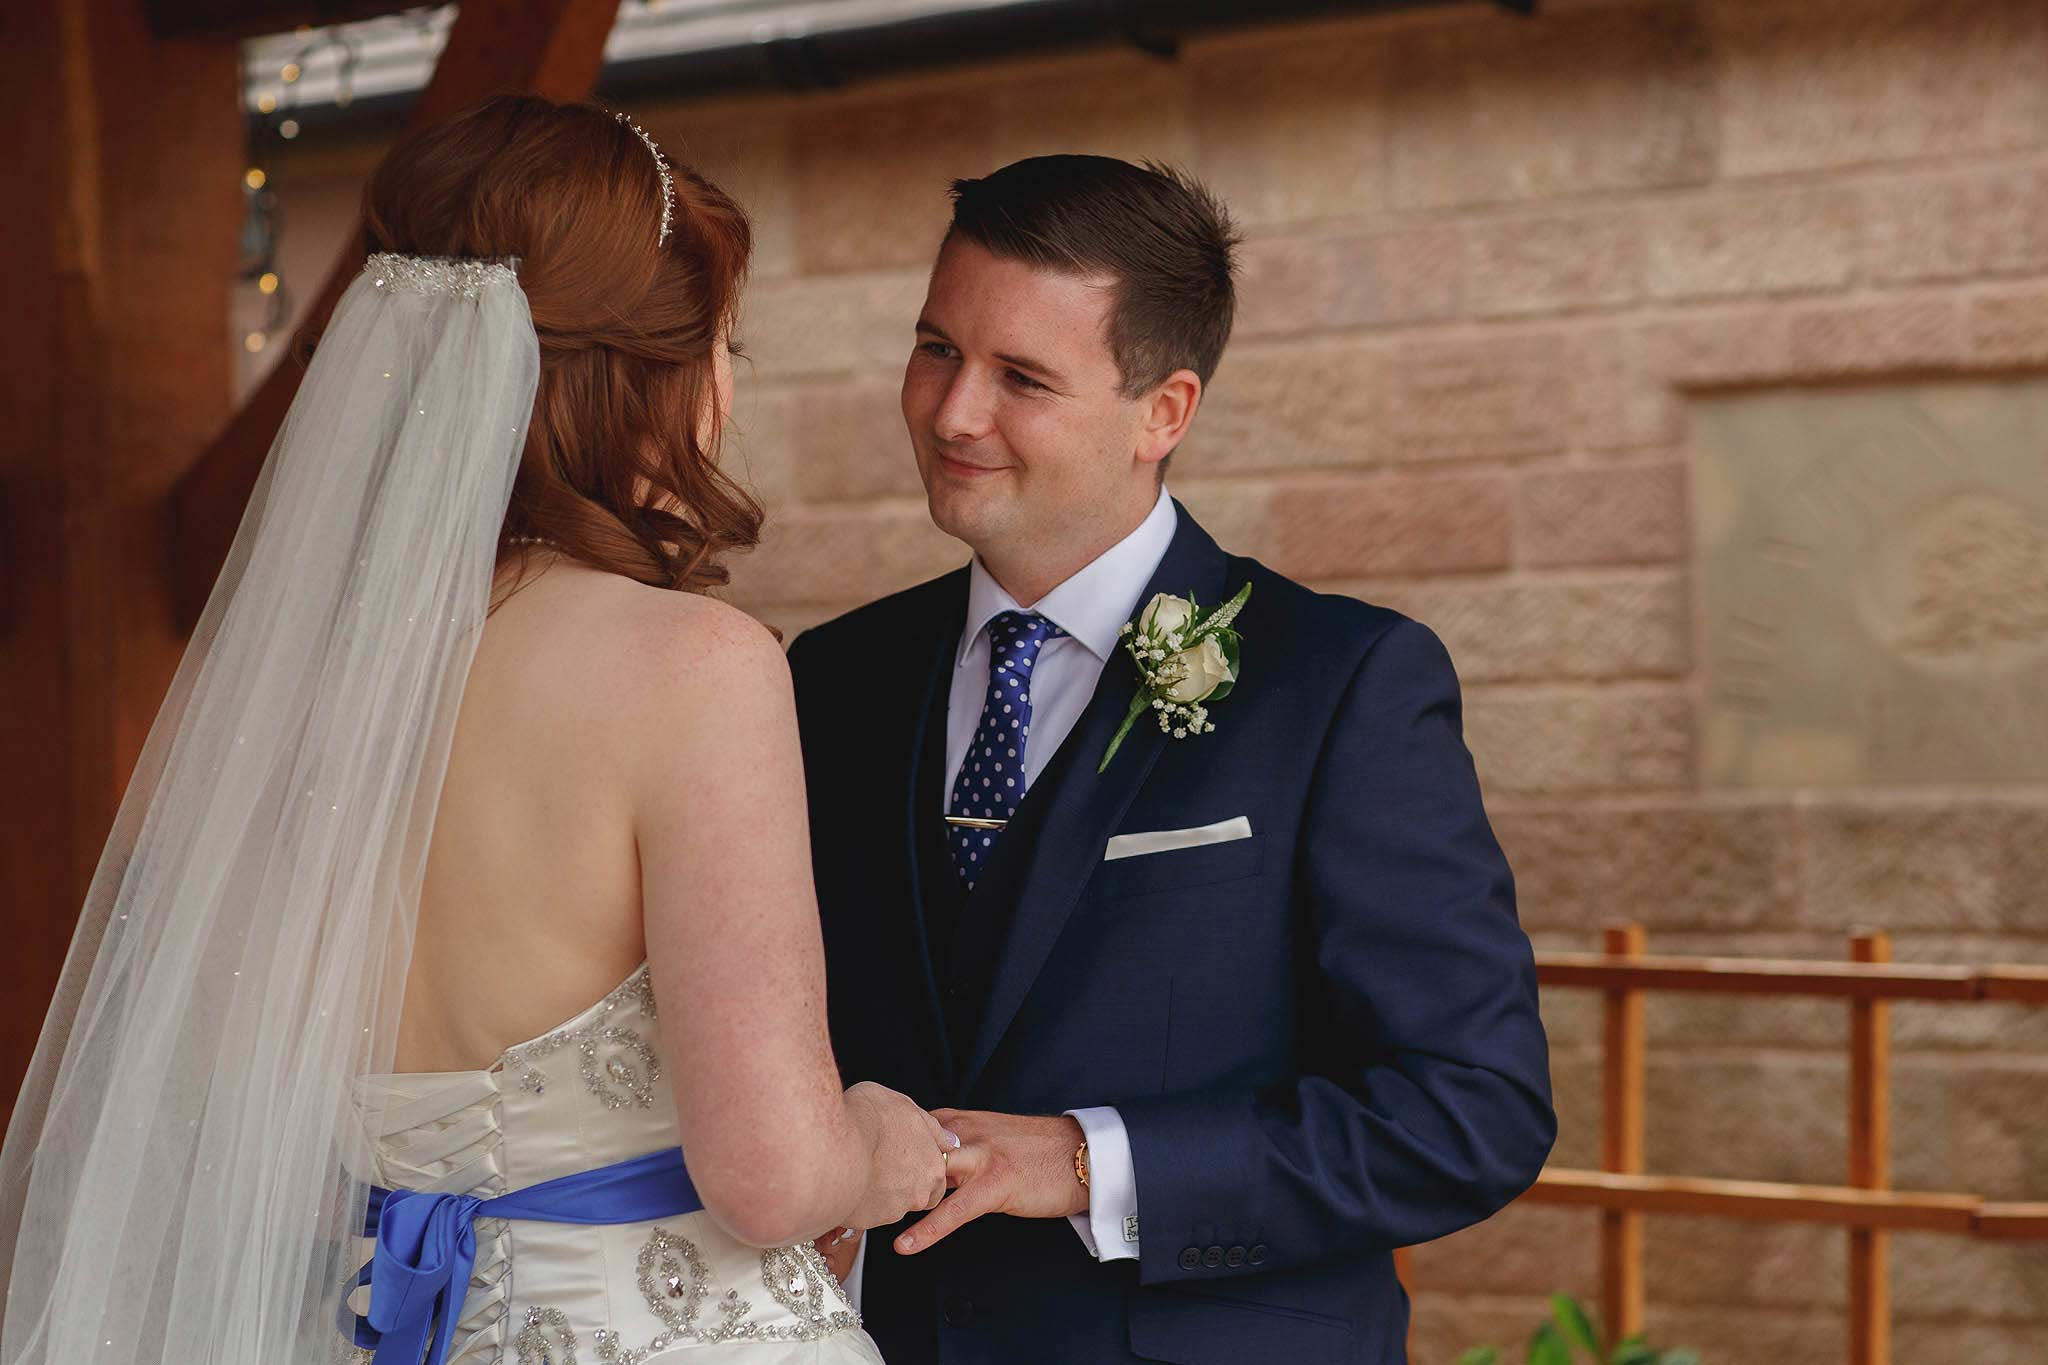 groom looking at bride during wedding ceremony at Heaton House Farm